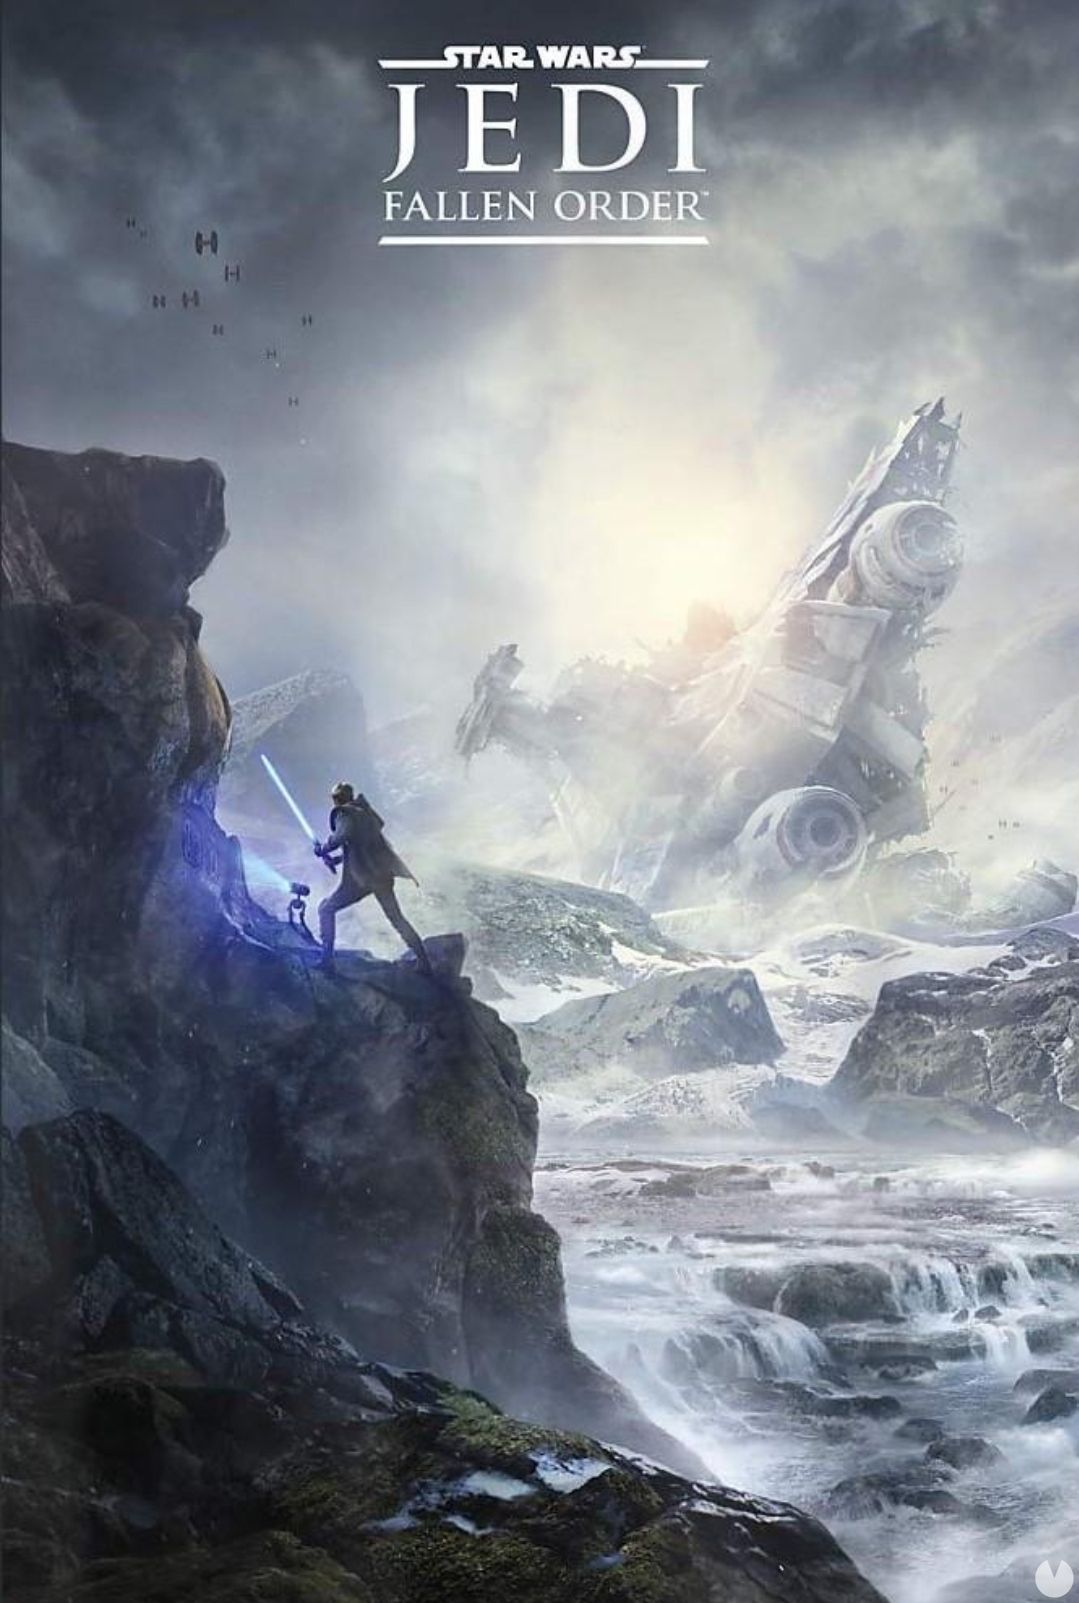 filters on the poster of Star Wars Jedi: Fallen Order